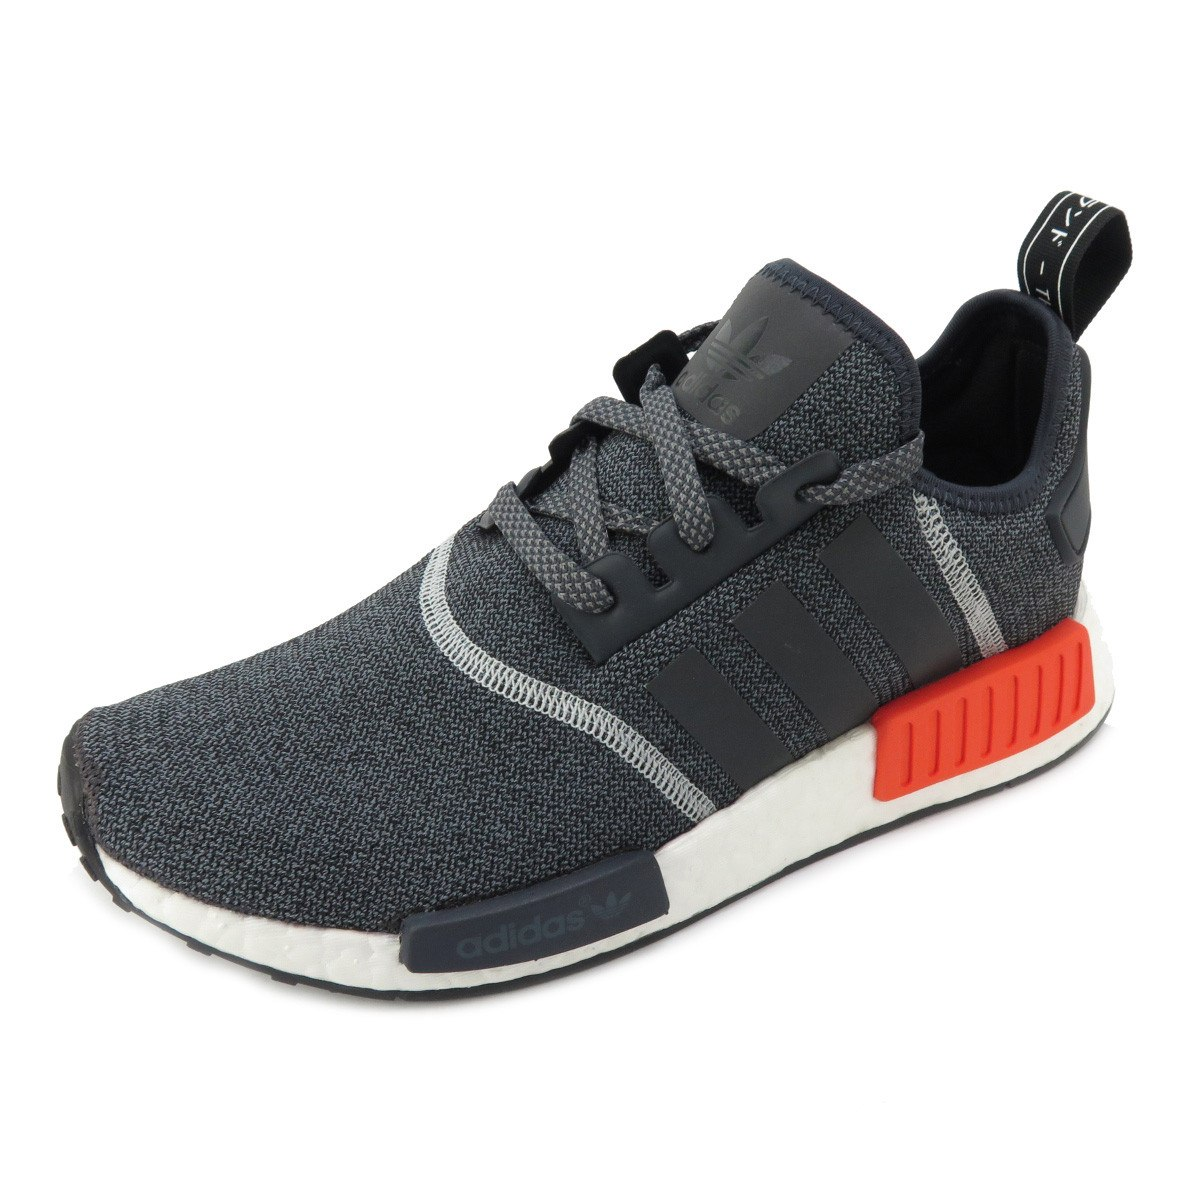 save off 7cccf 0b57f Tenis adidas Nmd R1 Dark Grey